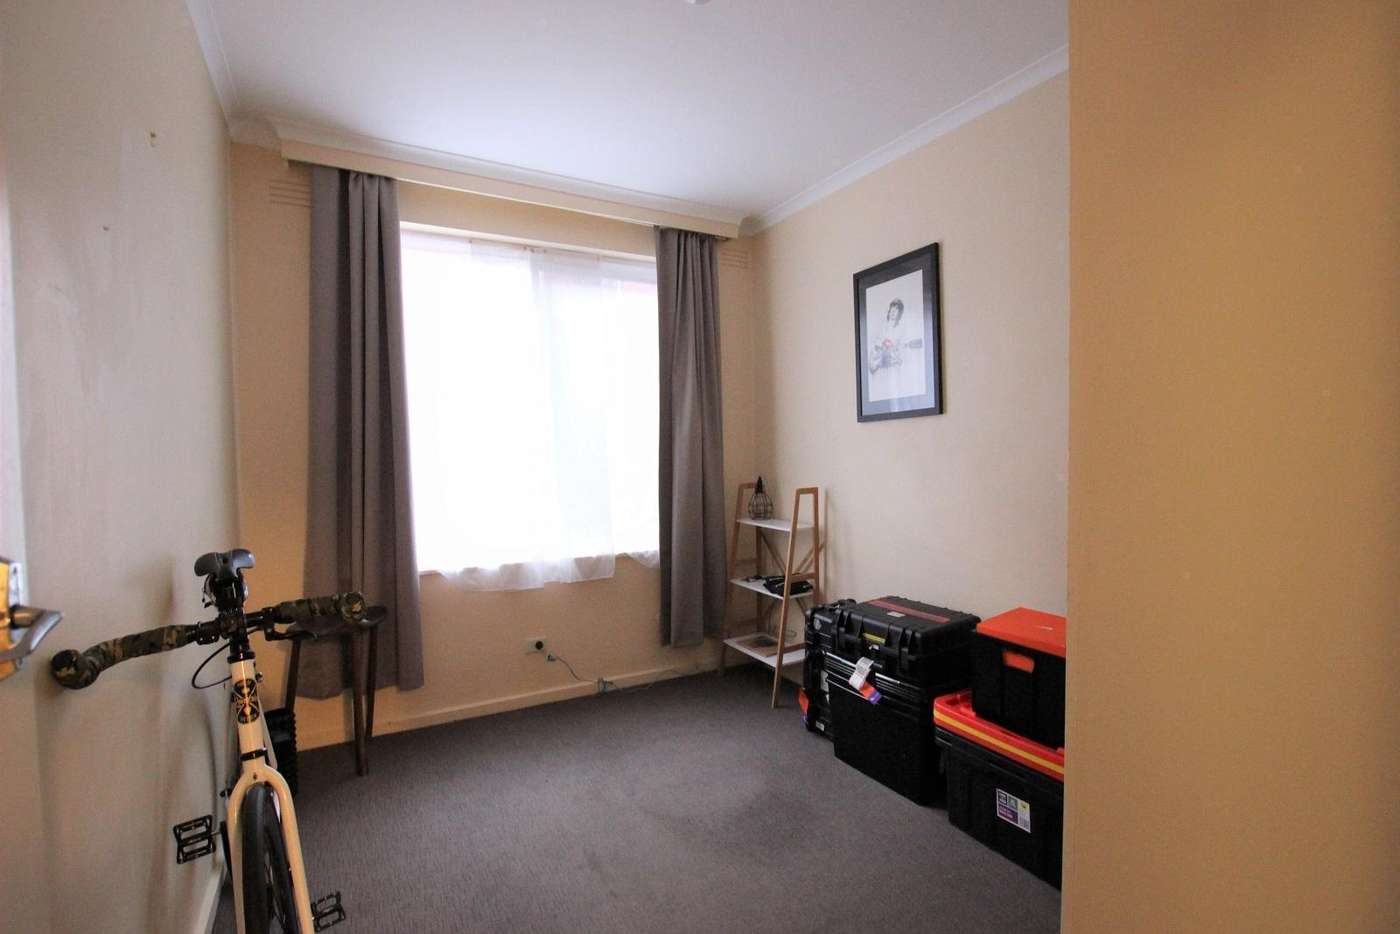 Sixth view of Homely apartment listing, 2/64 Waterloo Road, Northcote VIC 3070